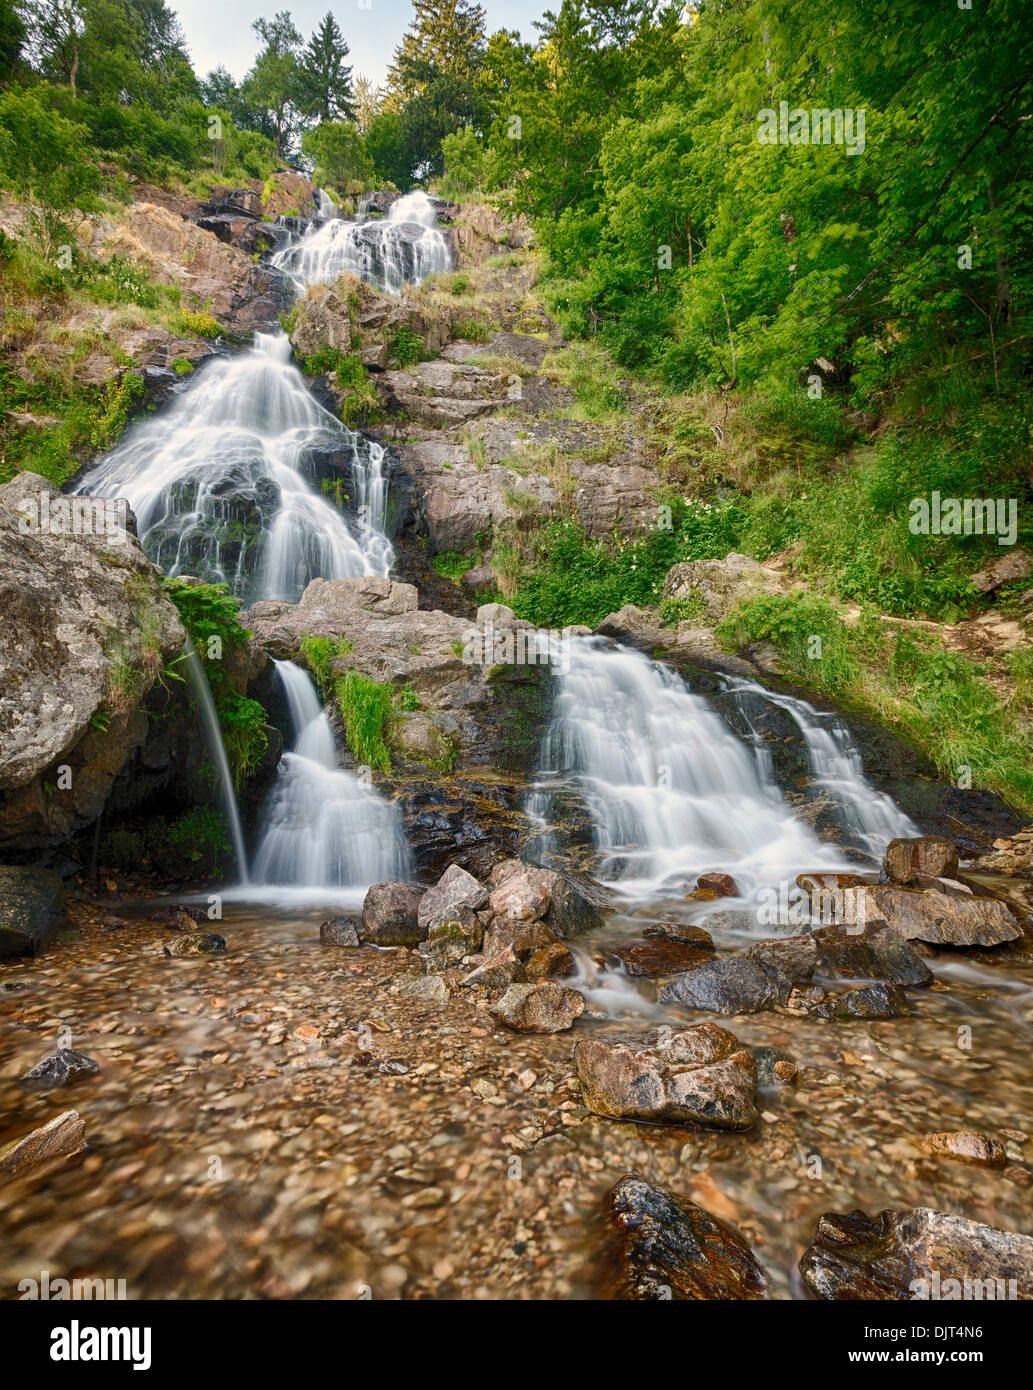 Todtnauer Waterfalls, Black Forest, Germany - Stock Image